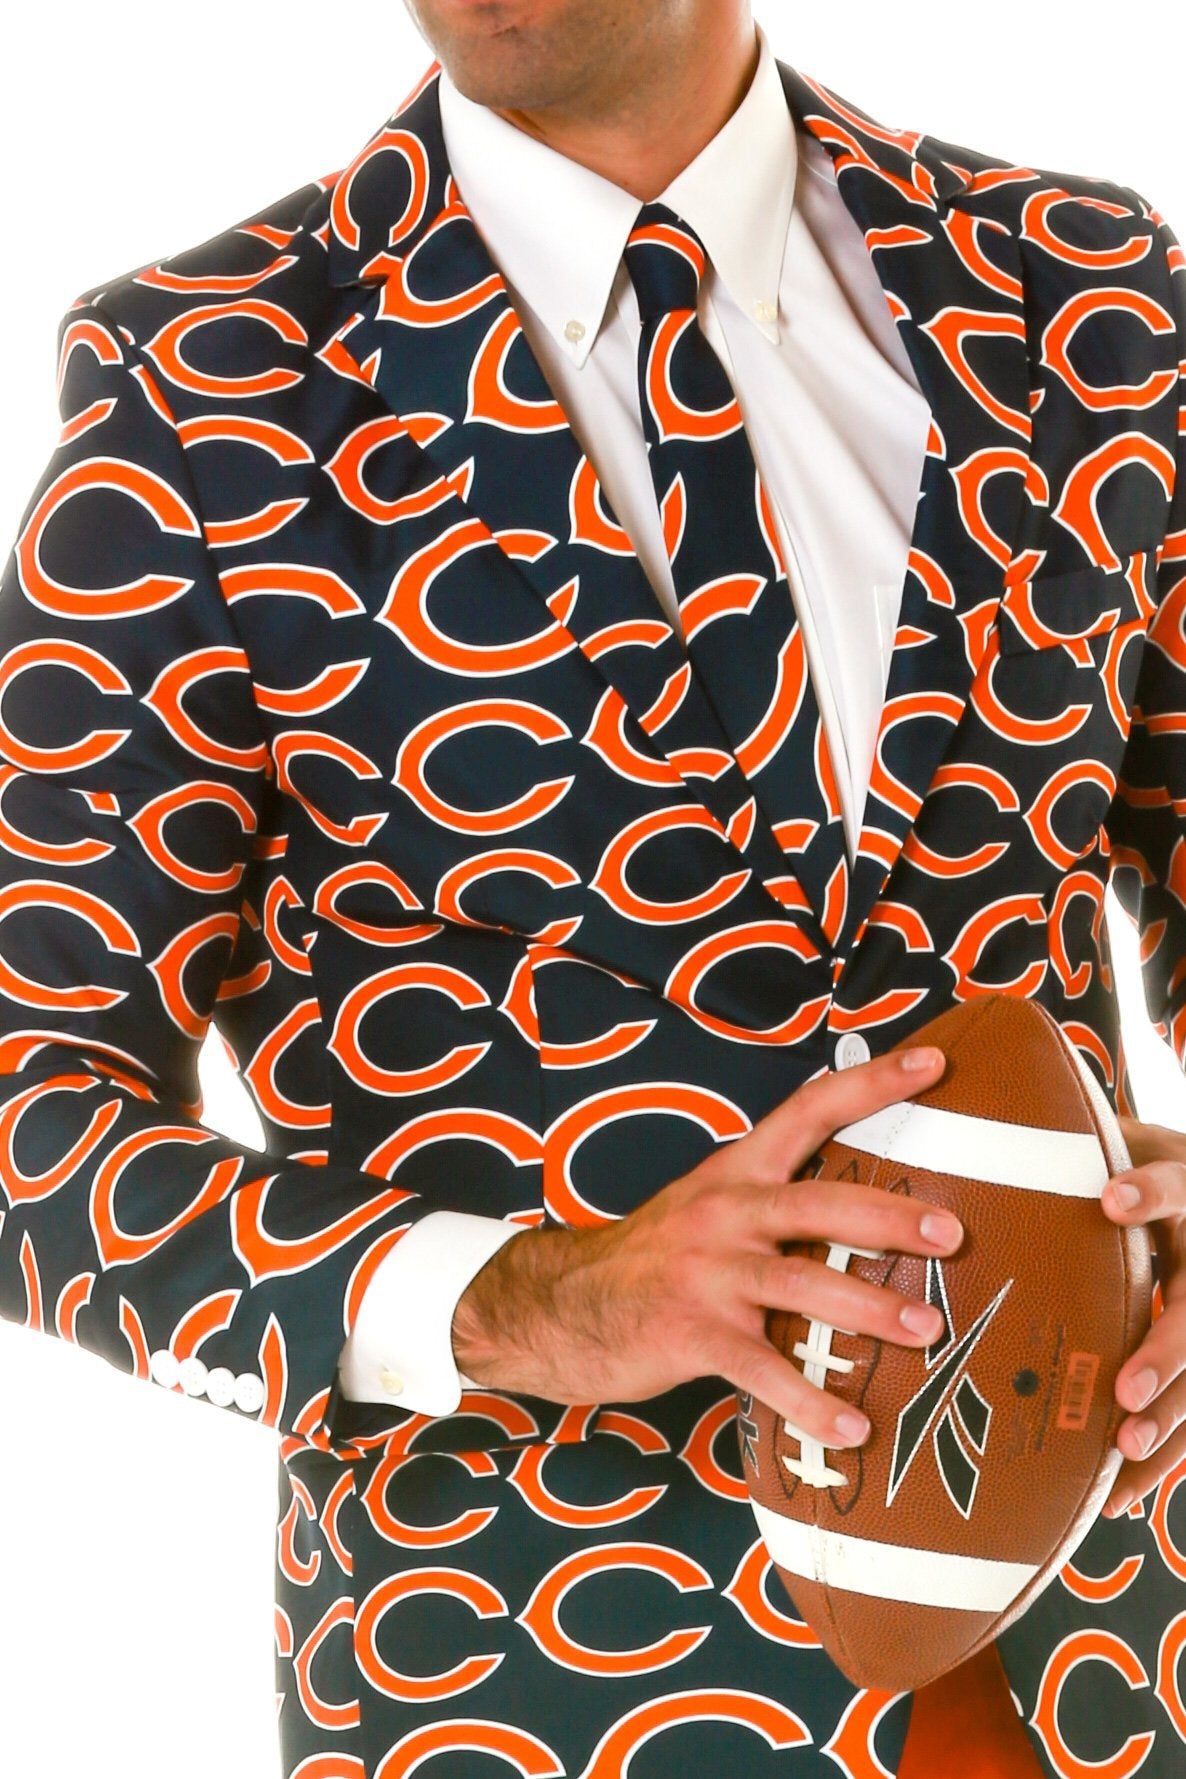 The Chicago Bears | Suit Jacket